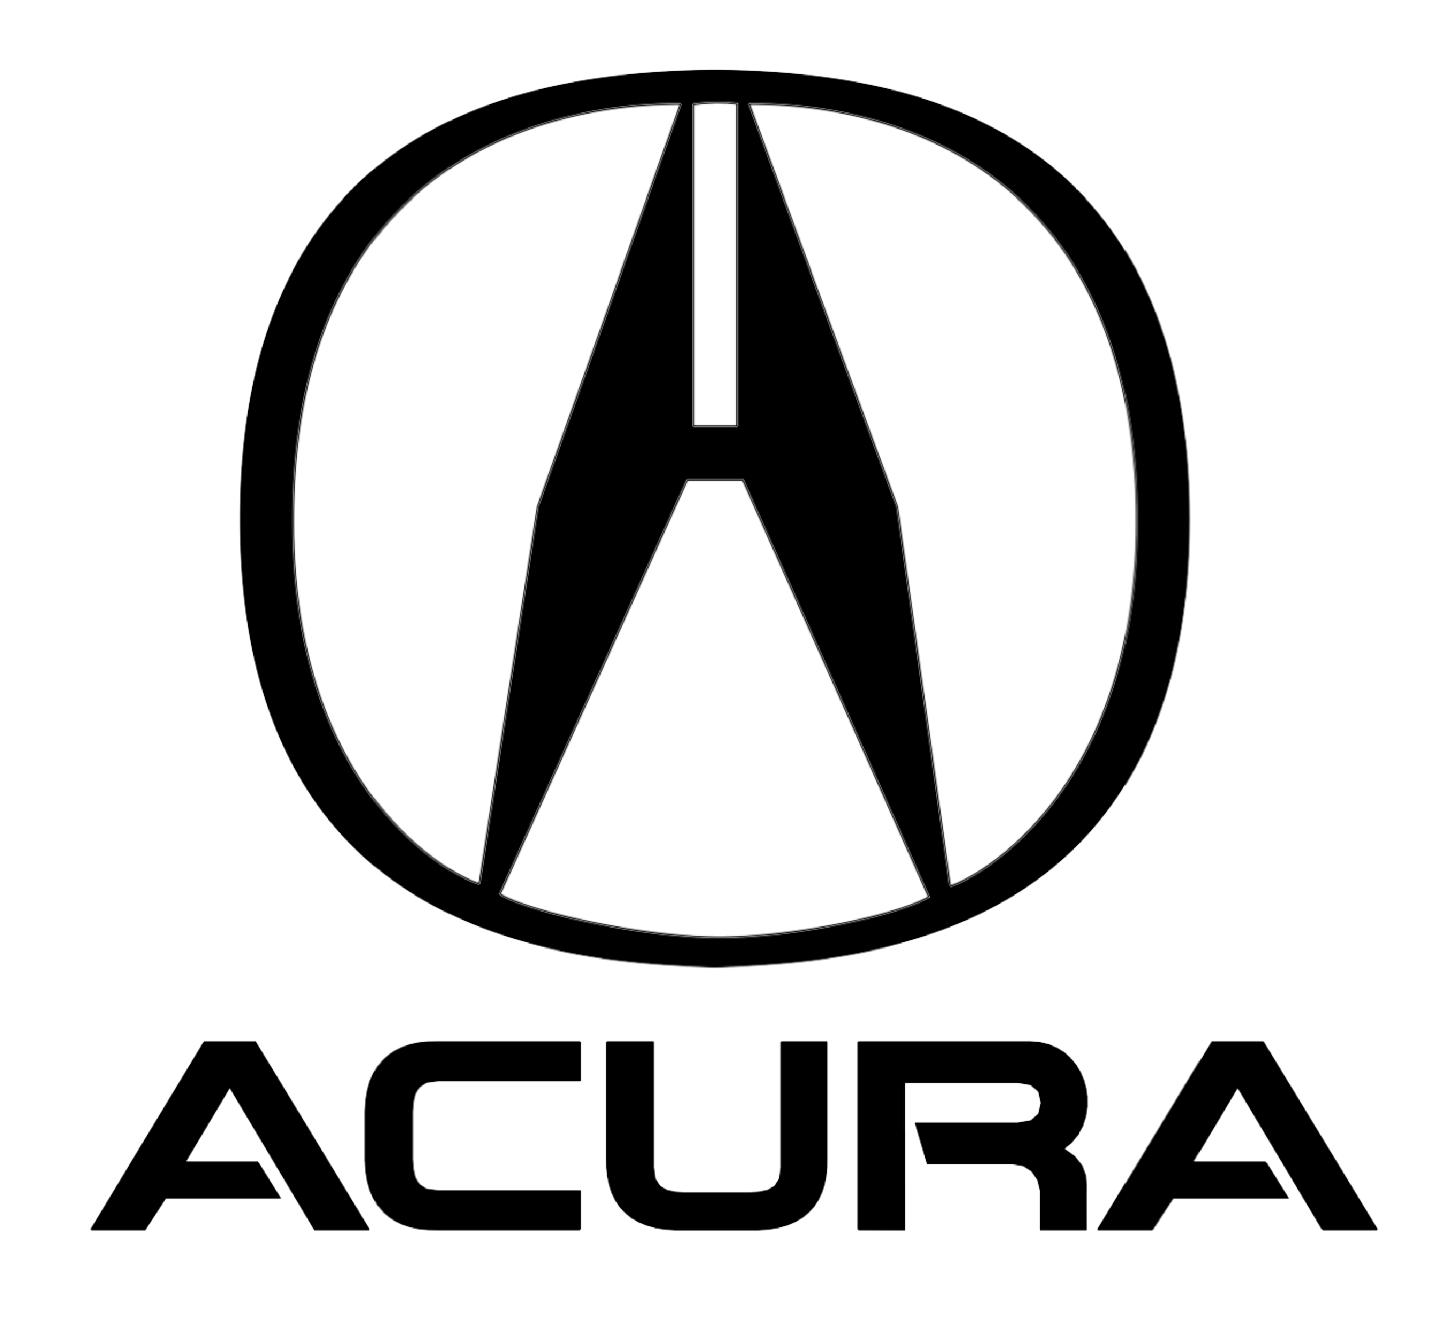 Acura Logo, Acura Car Symbol Meaning and History | Car ...Symbols